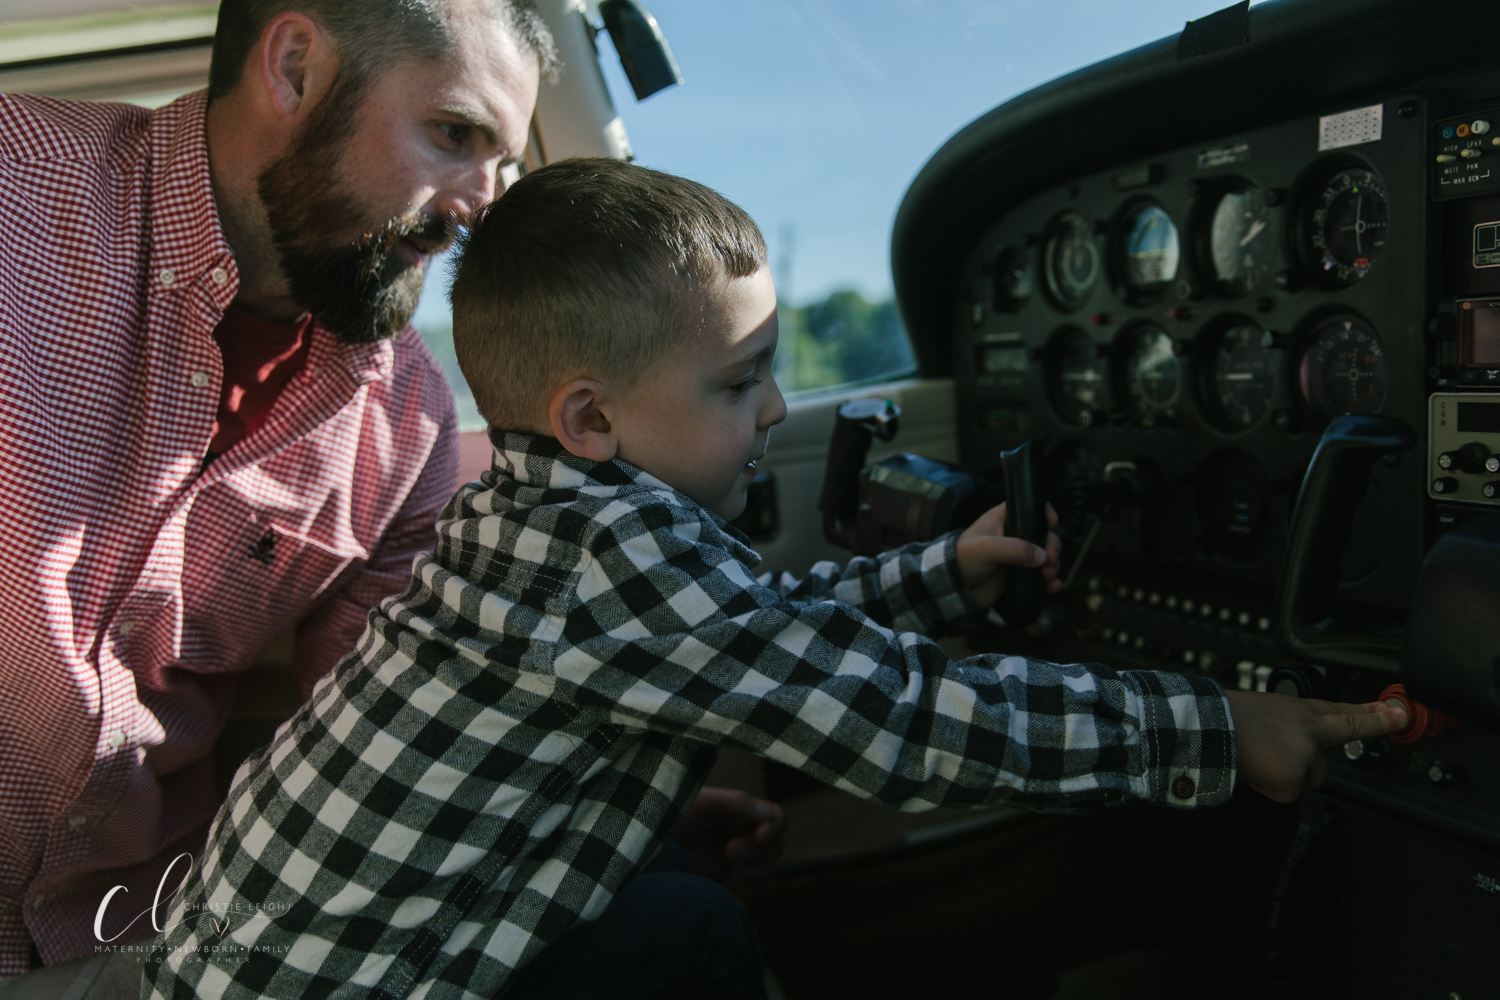 Aviation_Themed_Fourth_Birthday_at_Youngstown_Airport_Hanger_Vienna_OH_by_Child_and_Family_Photographer_Christie_Leigh_Photo-9.JPG